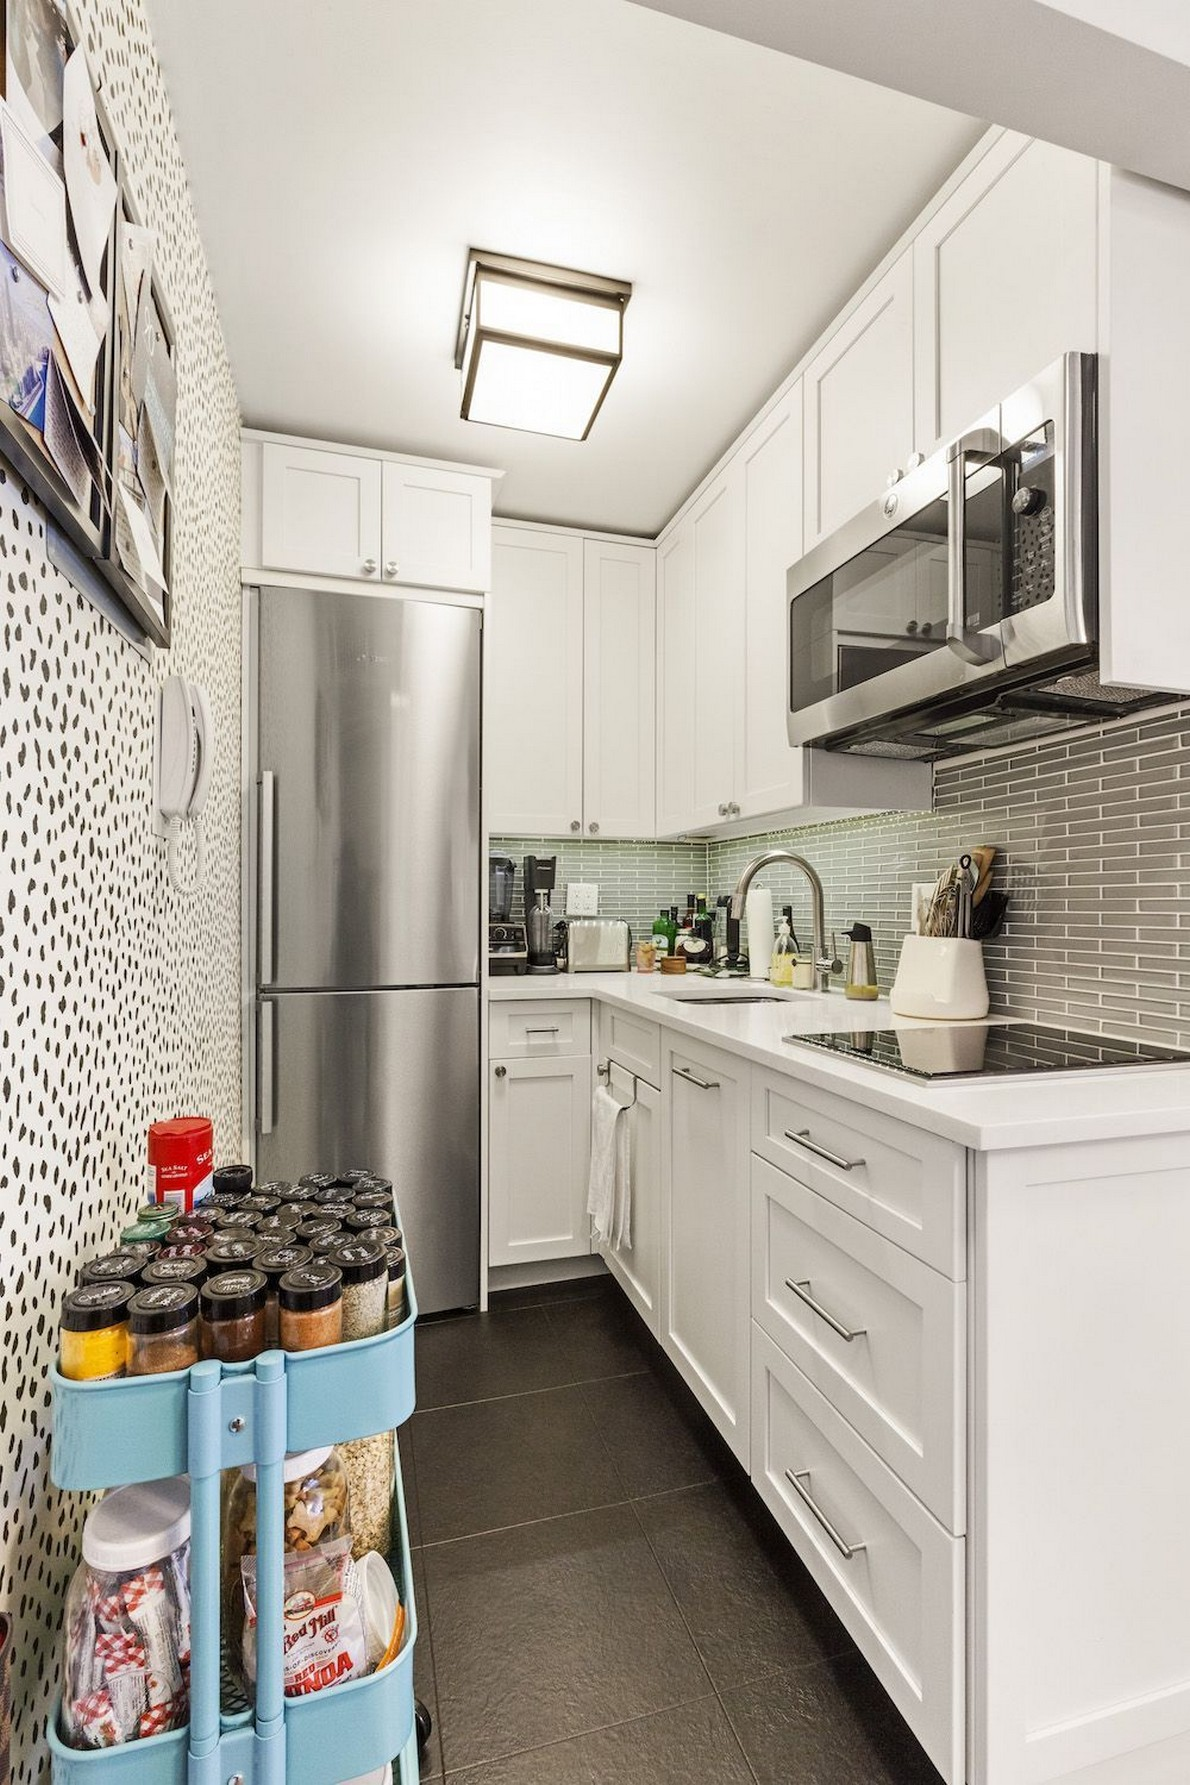 86 Some Small Kitchen Ideas To Help You Do Up Your Kitchen 28